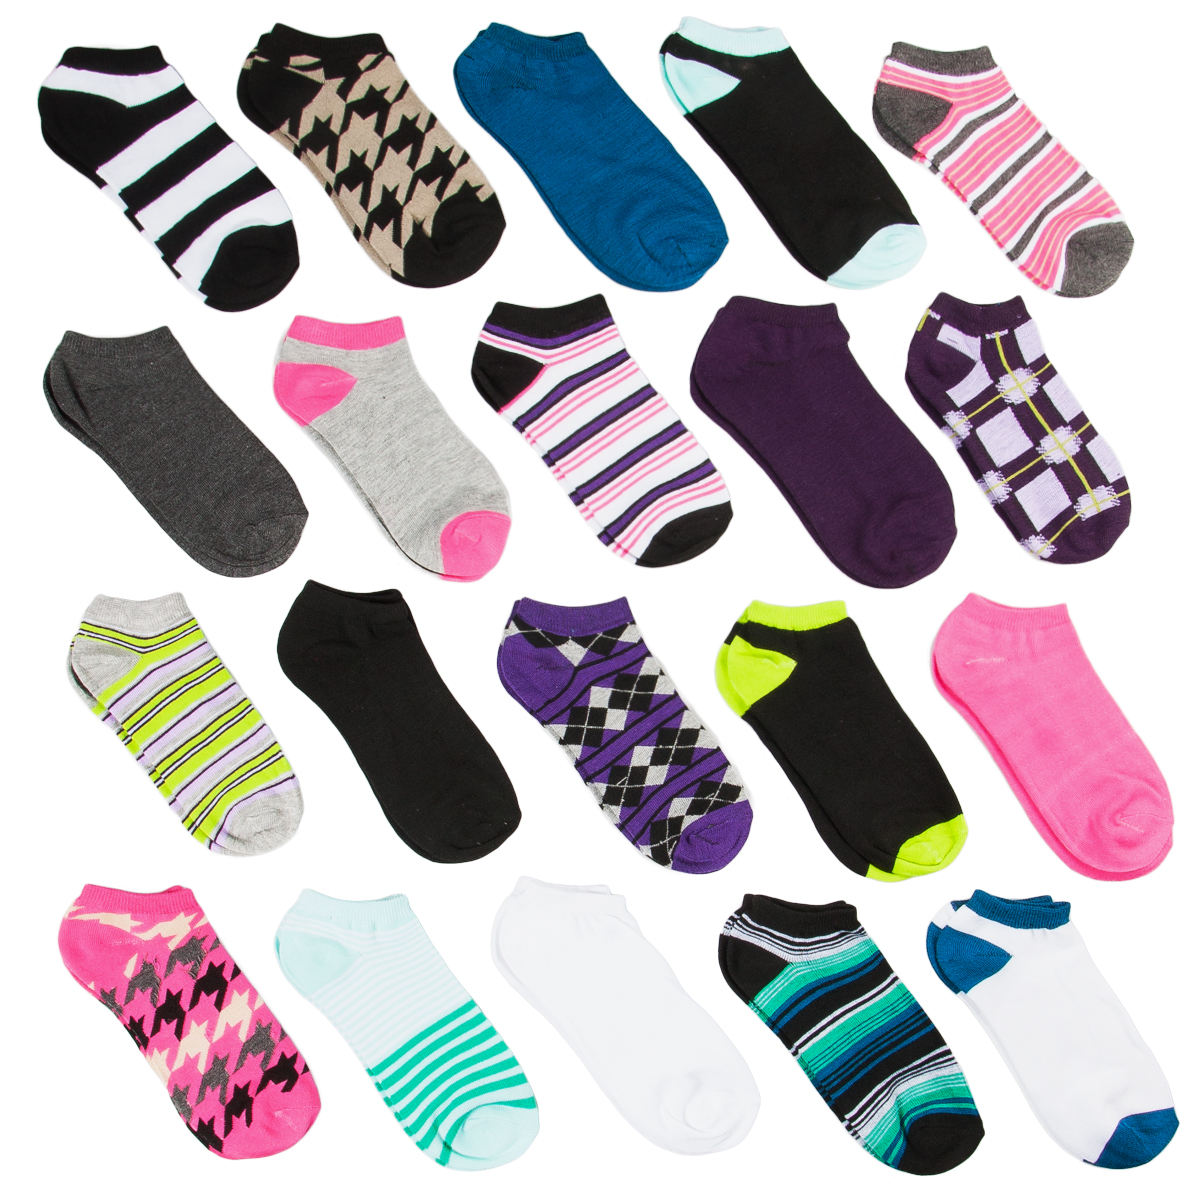 20 Pairs Girl's Athletic No-Show Ankle Socks Bulk Lot Assorted Prints Size 11-4